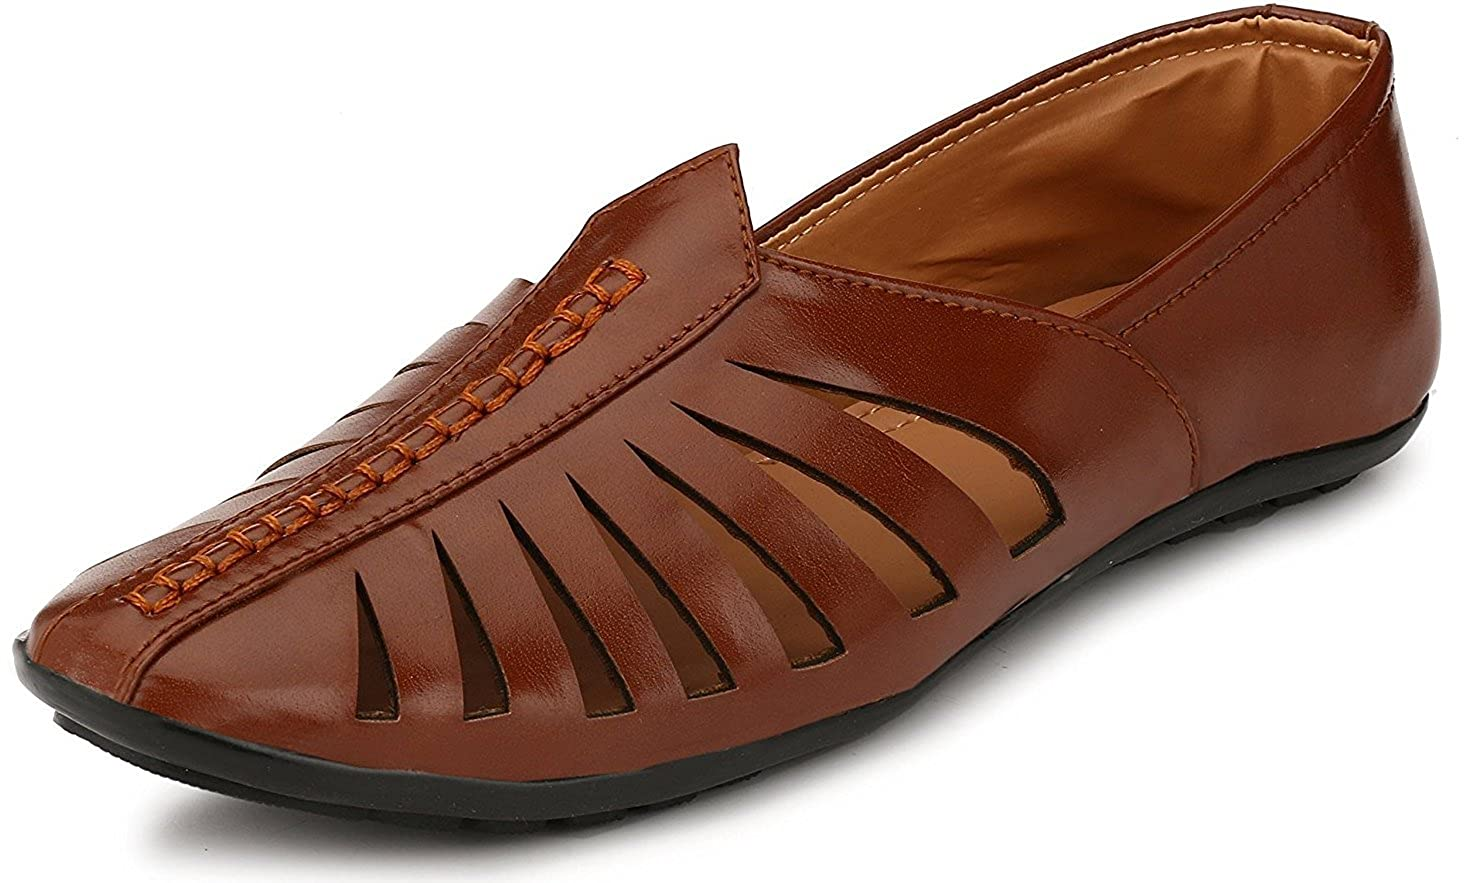 Shoe Fab Men's Stylish 0181 Tan Brown Green Colour Formal Casual Ethnic Office Party Daily Wear Sandal